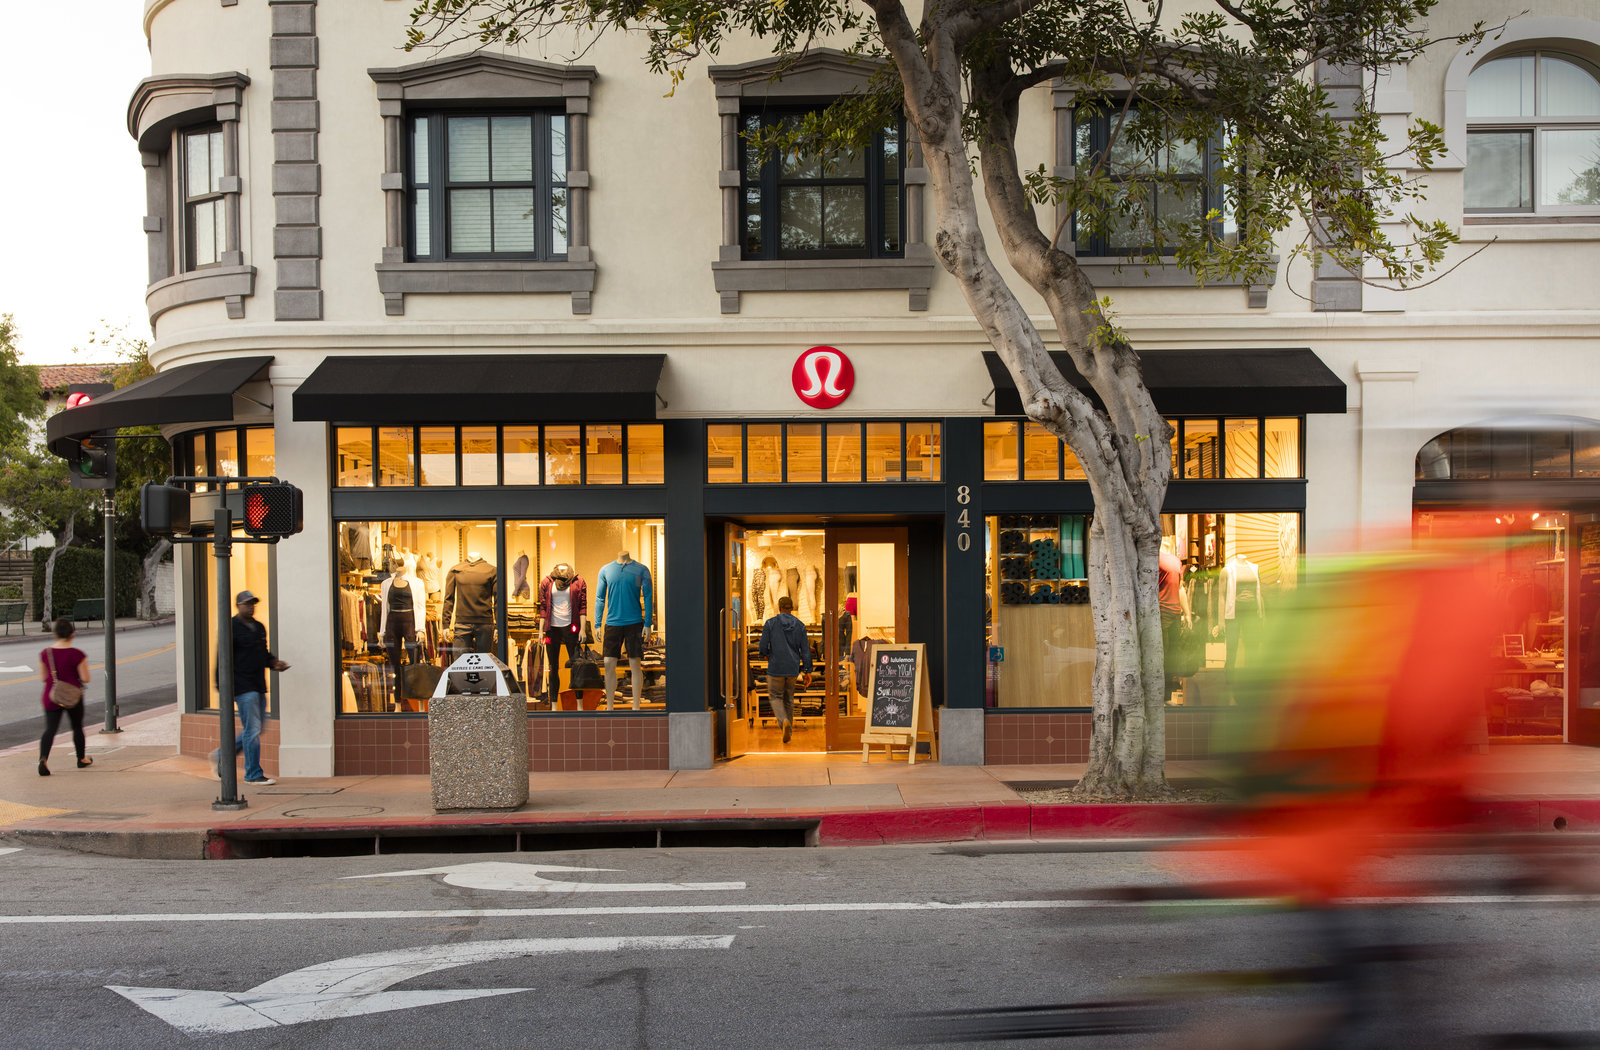 lululemon athletica storefront with pedestrians on sidewalk and bicyclist zooming by in street